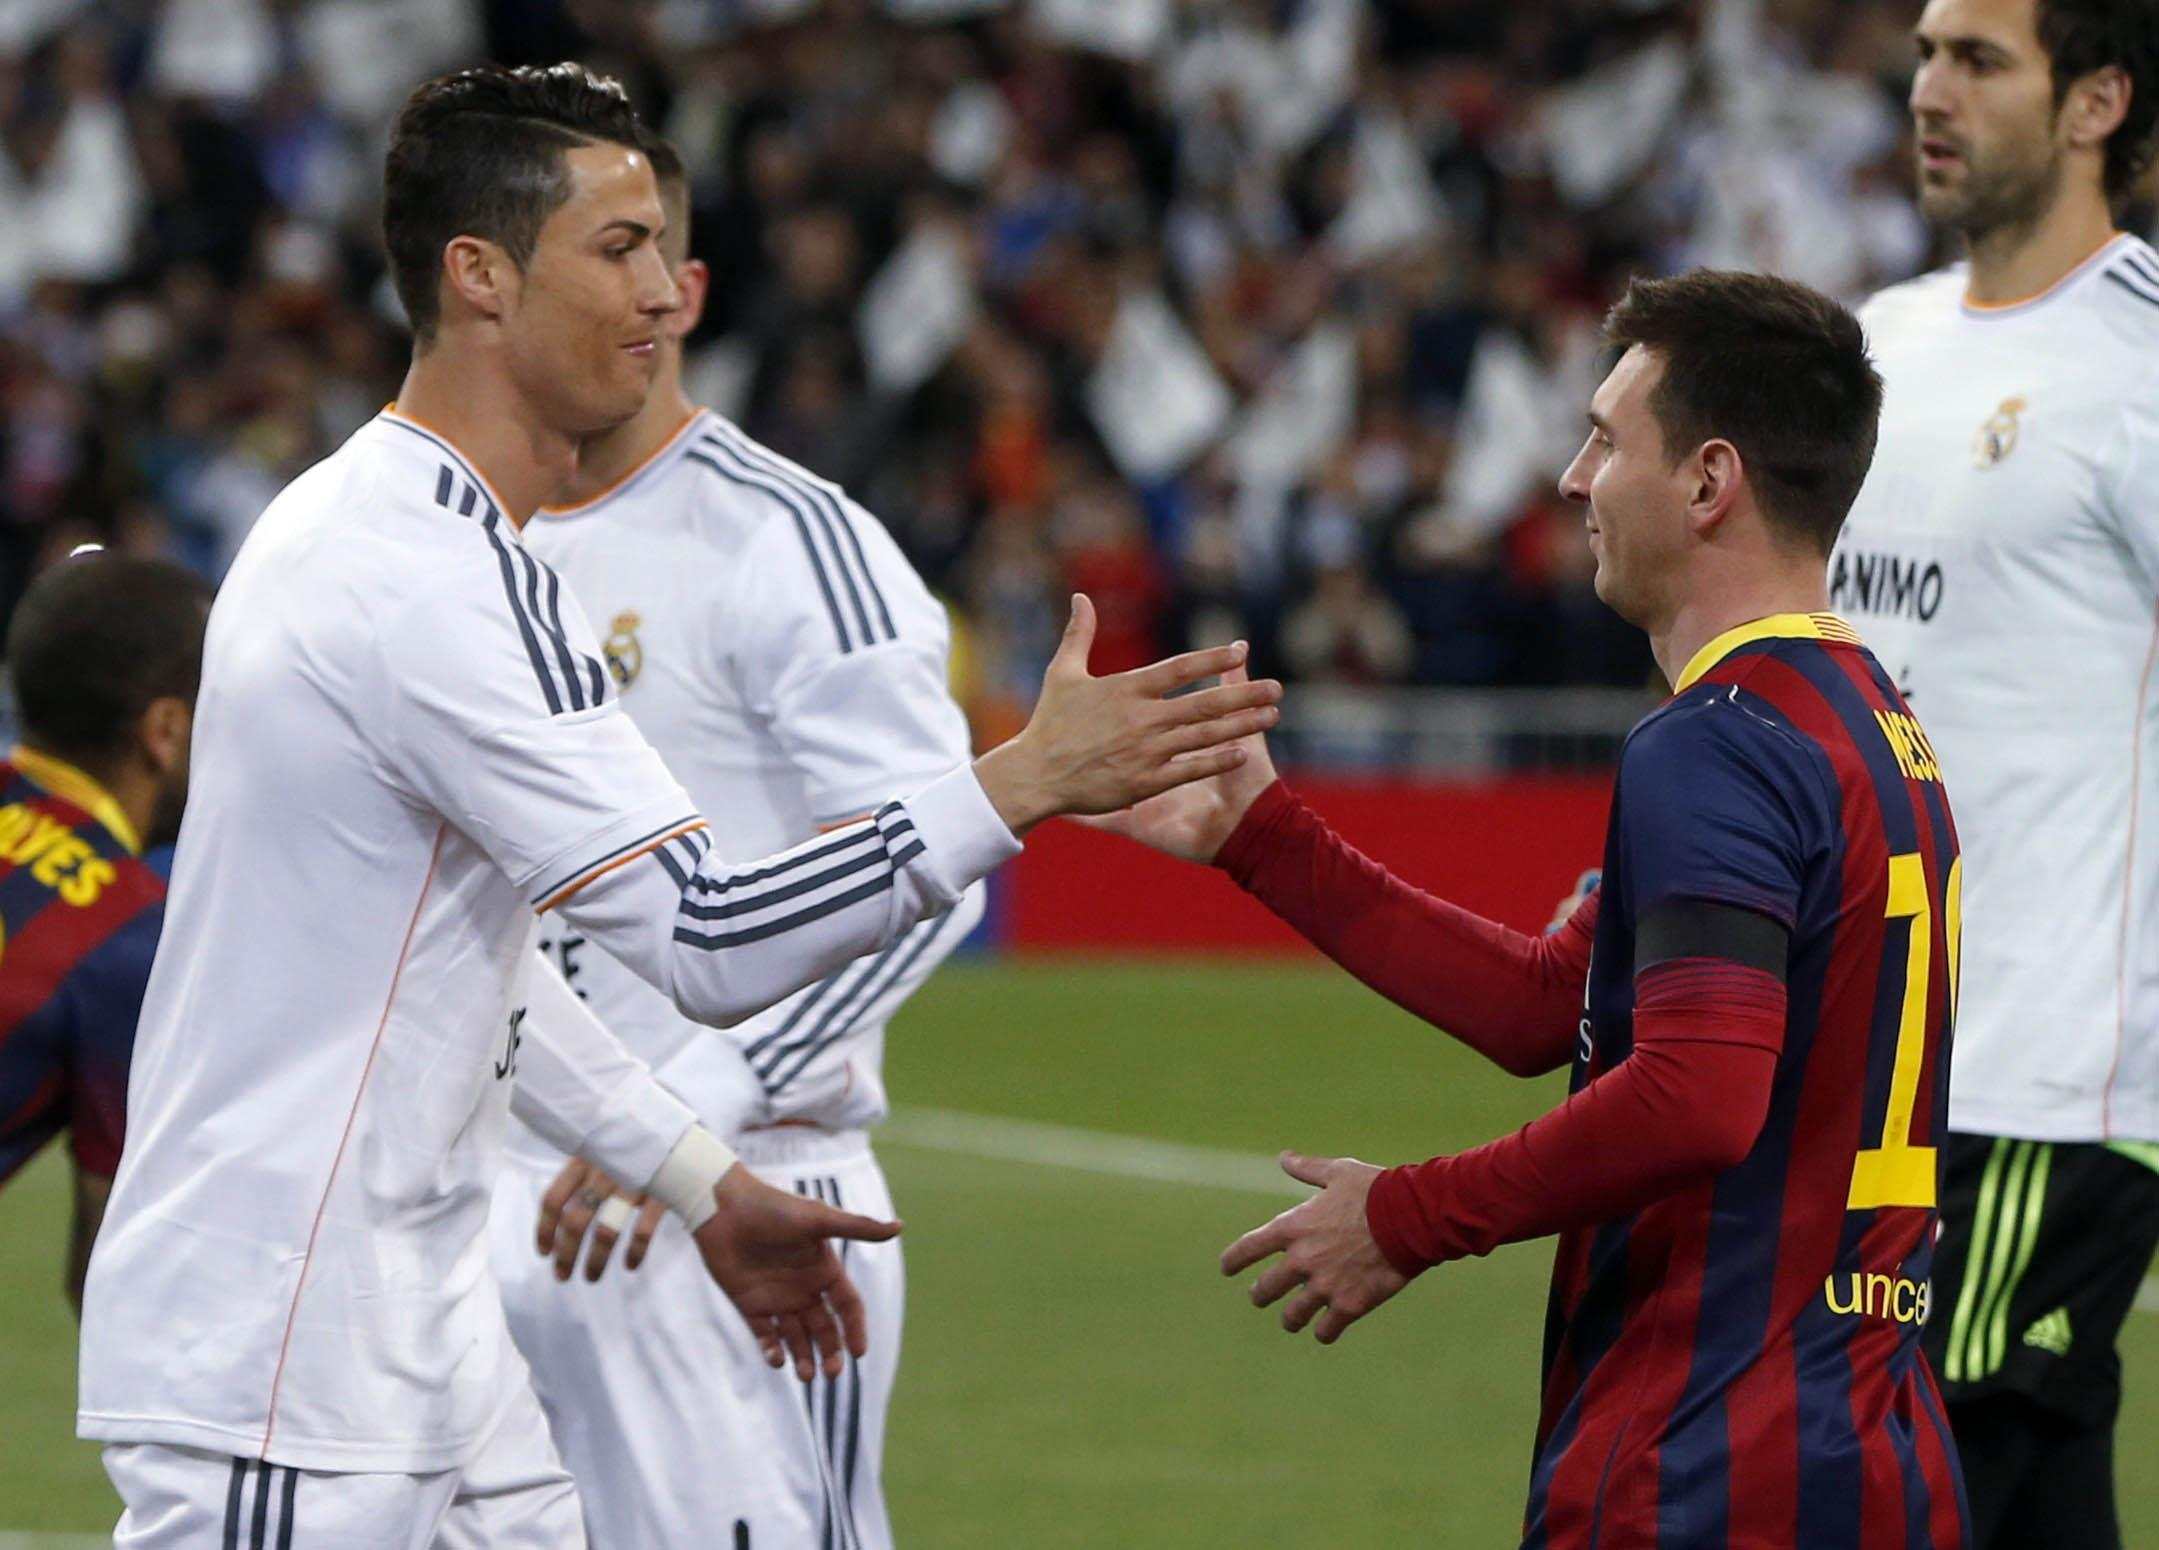 Cristiano Ronaldo Dominates Over Messi and Barcelona, Leipzig Eliminates Manchester United